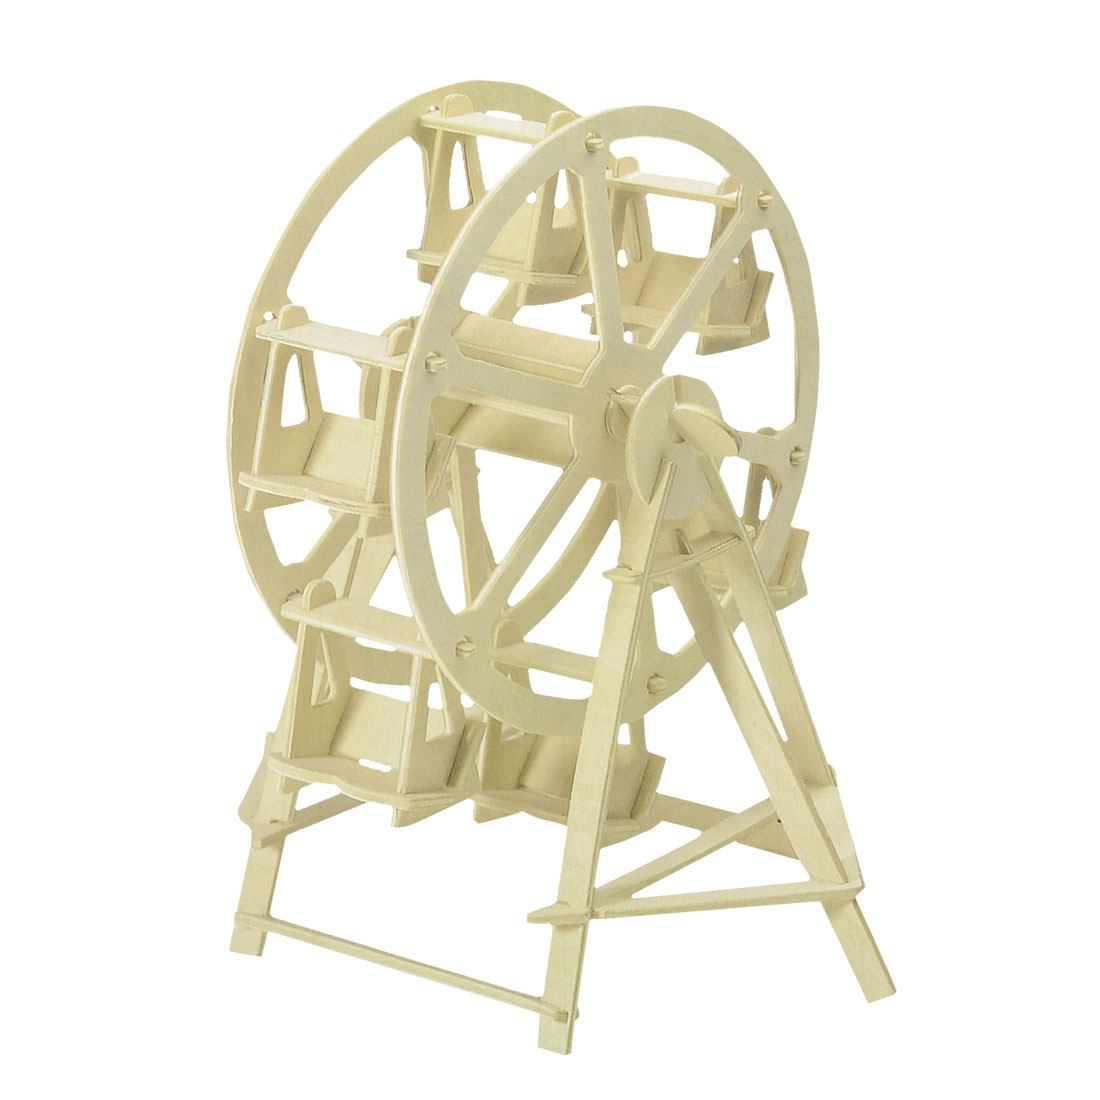 Educational DIY Assembly 3D Ferris Wheel Woodcraft Construction Puzzle Toy